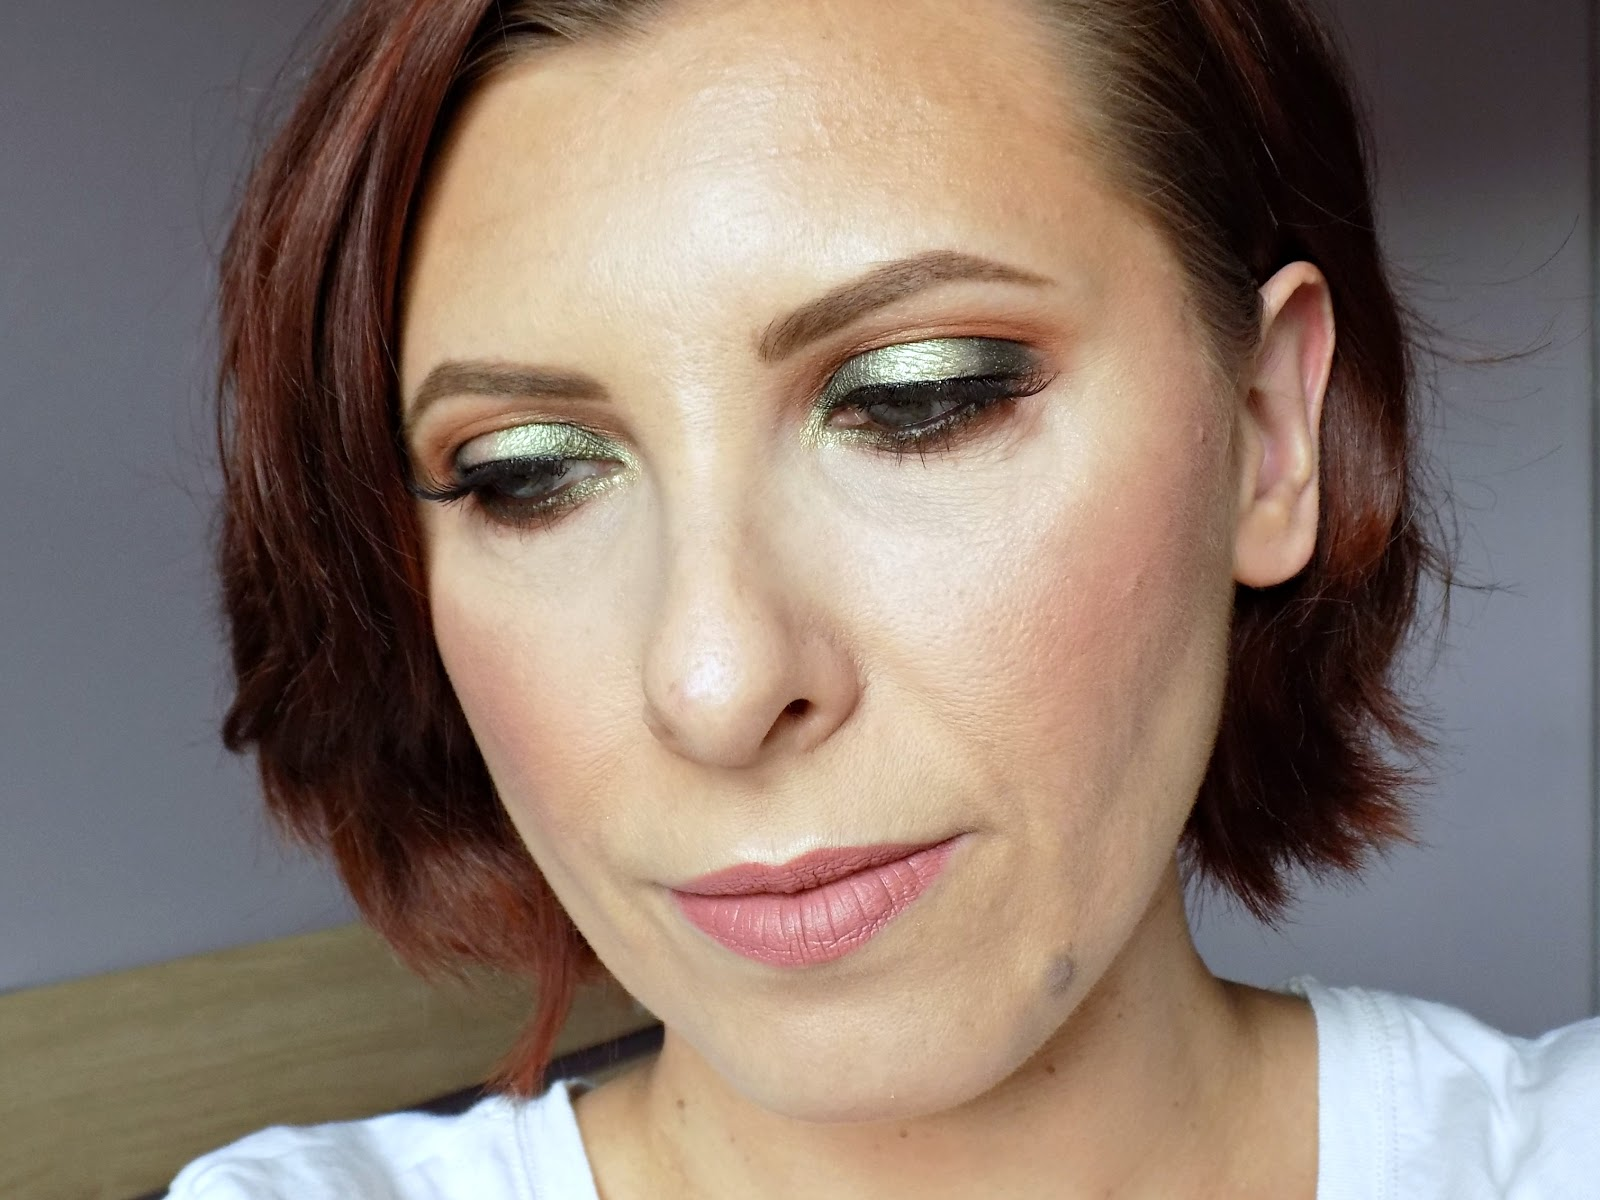 green halo eye look using Makeup Geek eyeshadows